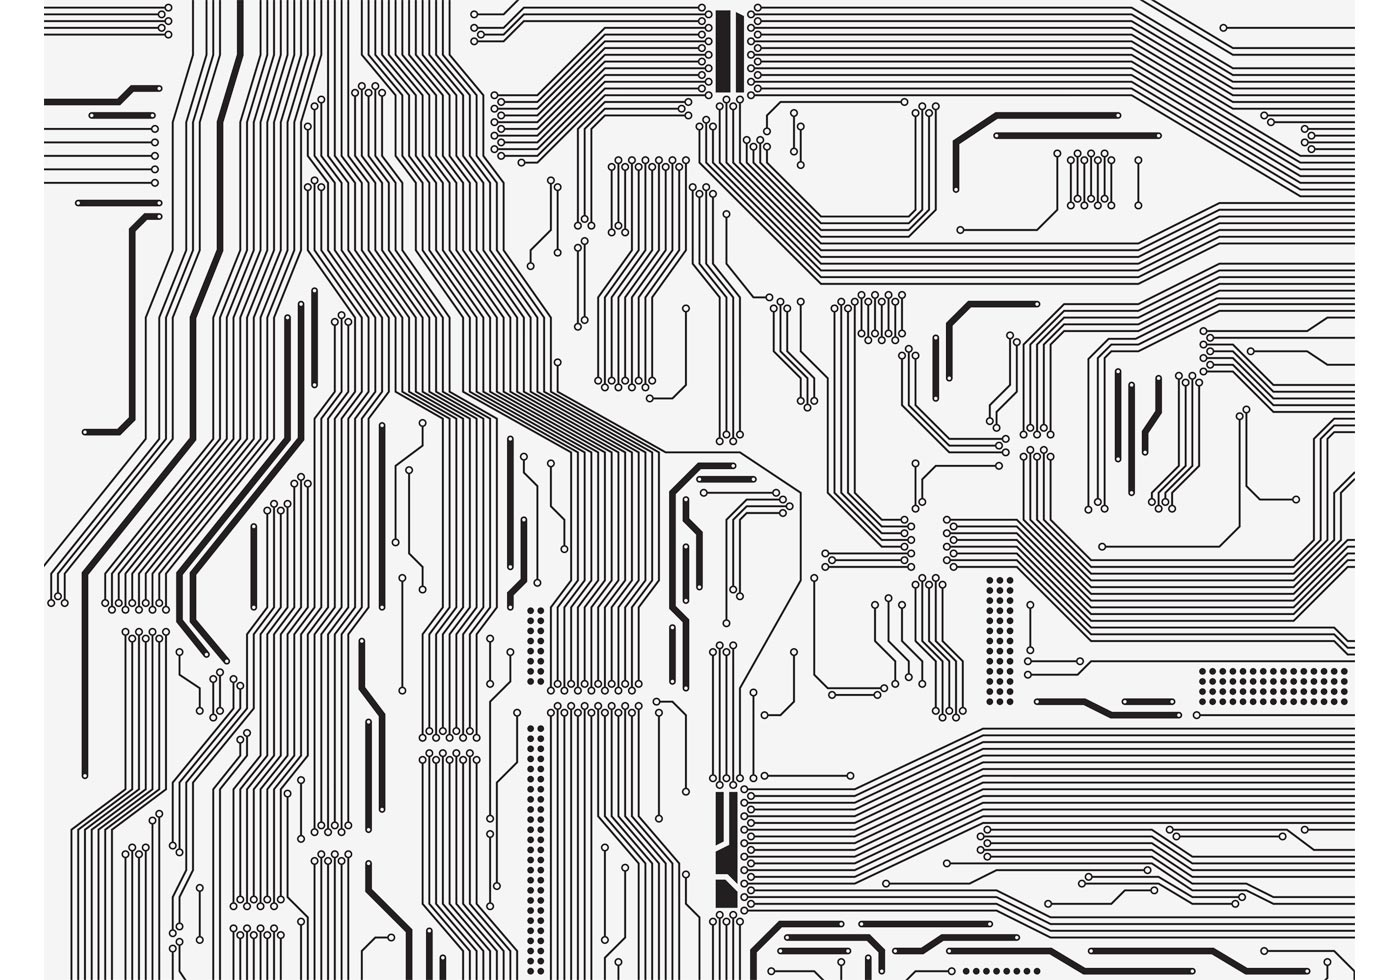 Circuit Board Vector Download Free Art Stock Graphics Images Design Over Green Background Illustration